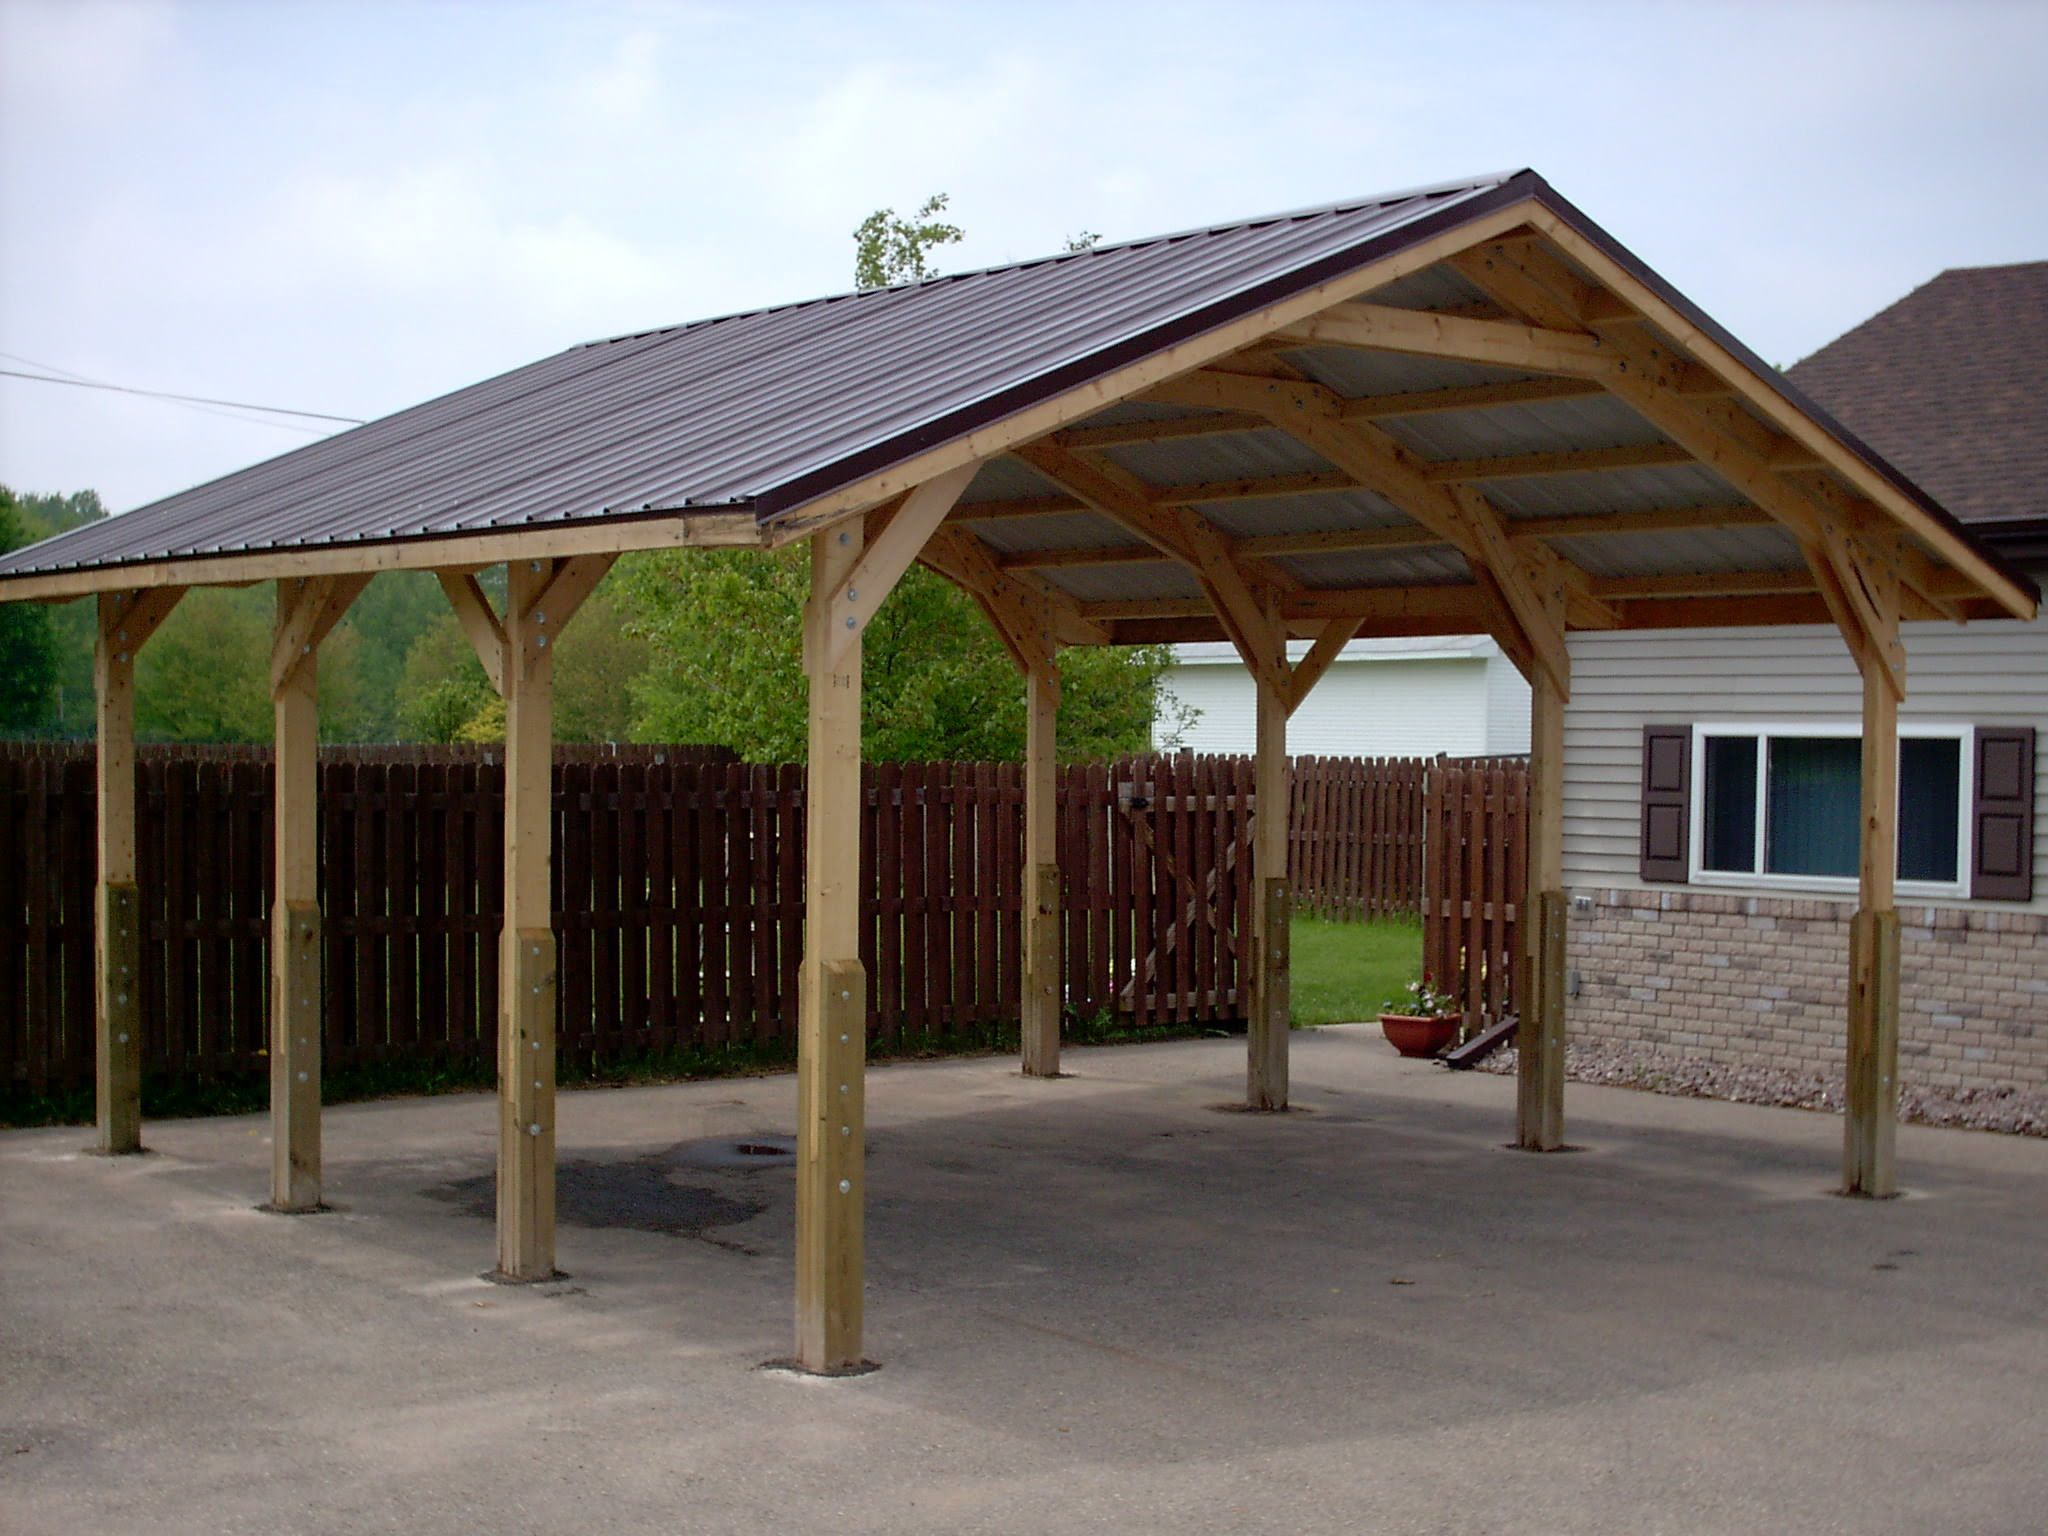 Car port shawanocarport wayneofbowler car ports for Carport garage designs